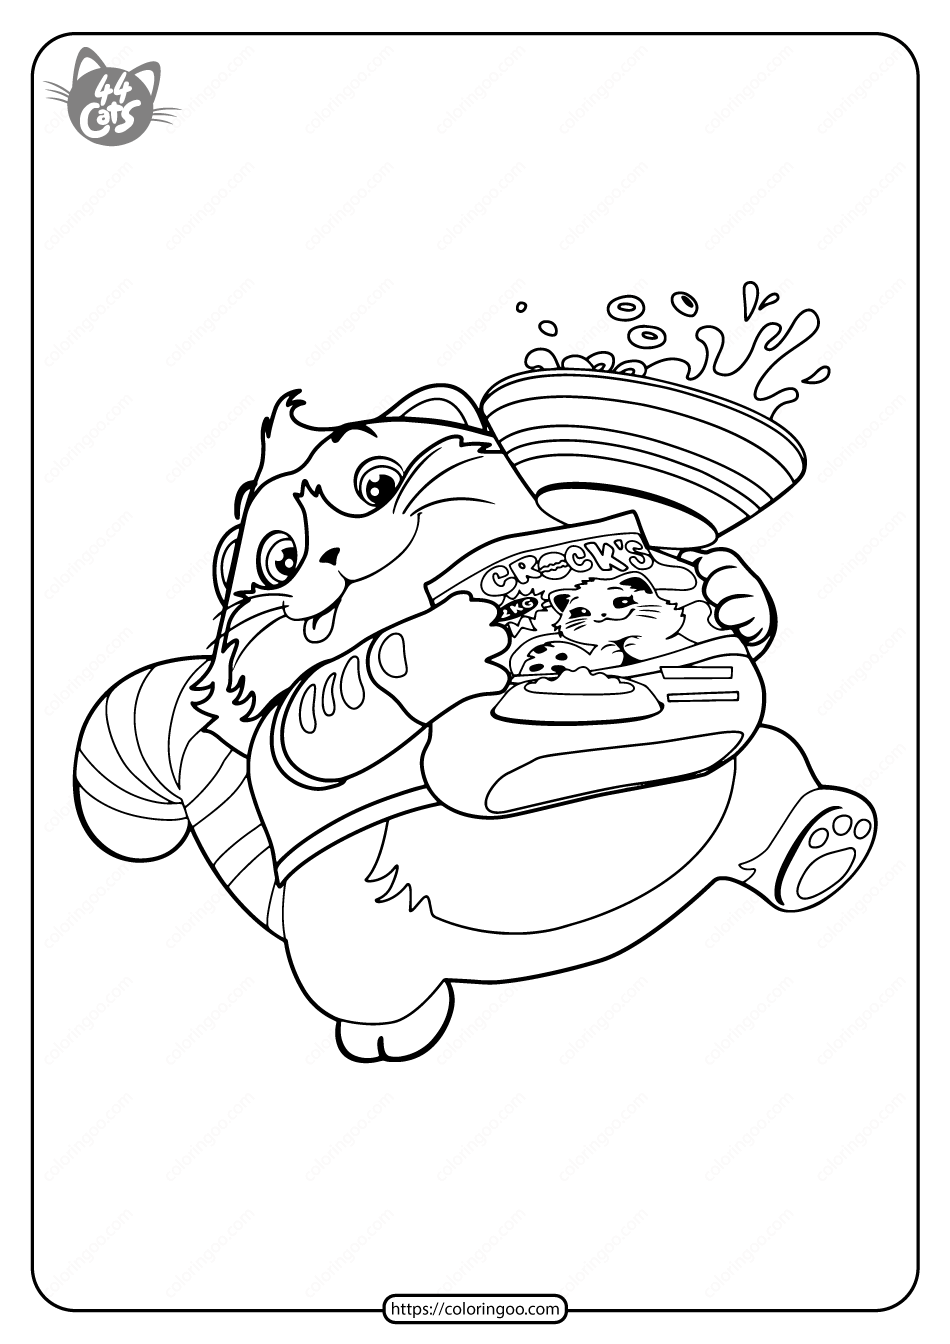 Free Printable 44 Cats Meatball Pdf Coloring Page